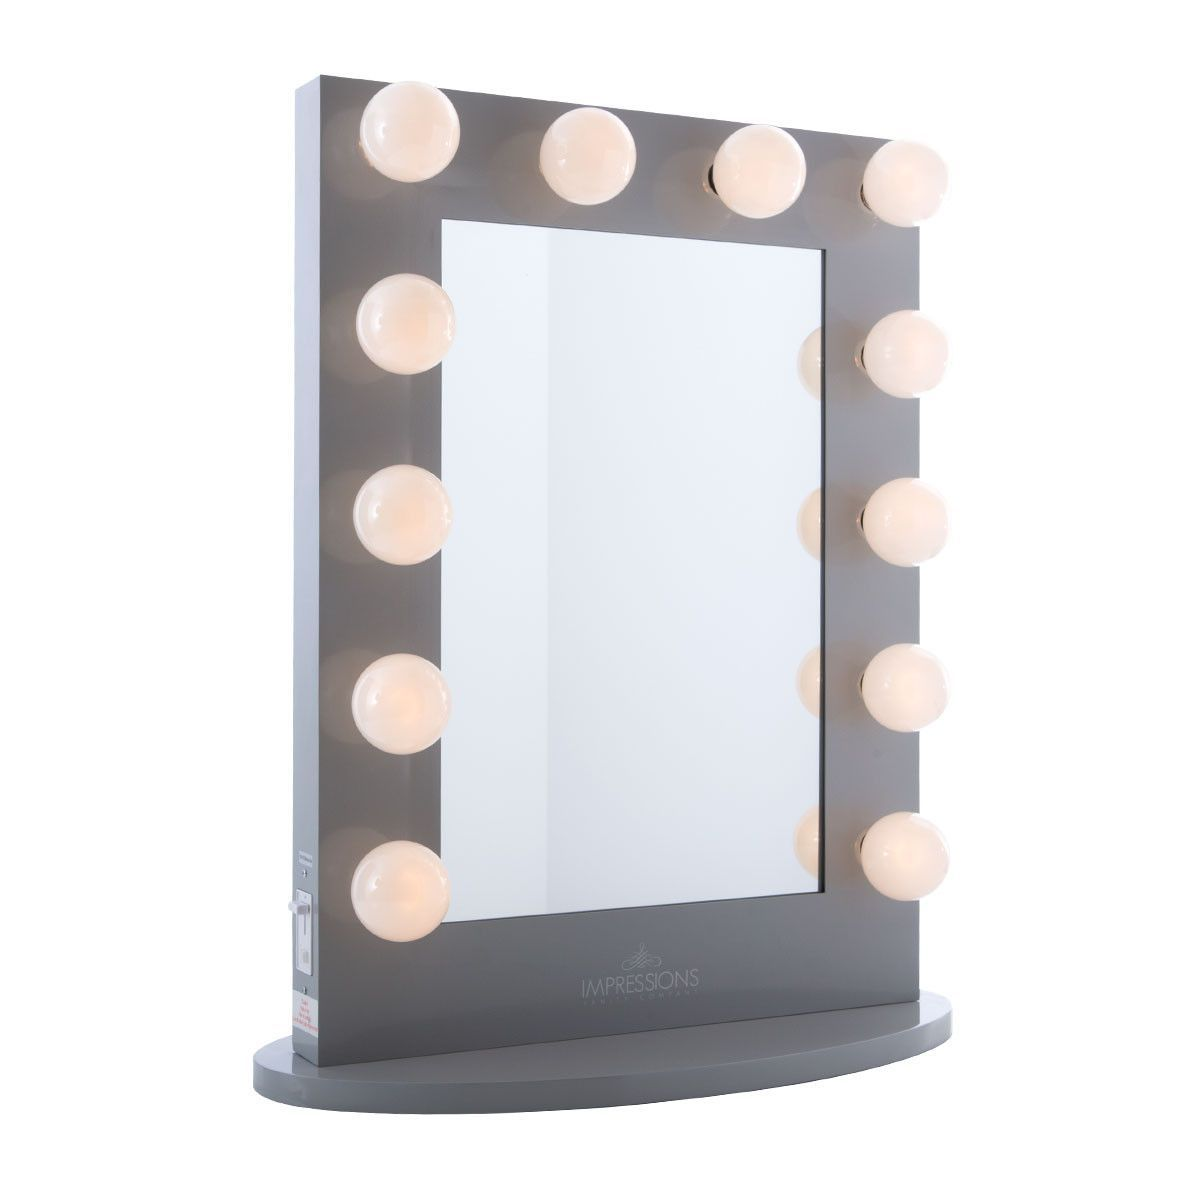 Hollywood Iconic XL Vanity Mirror